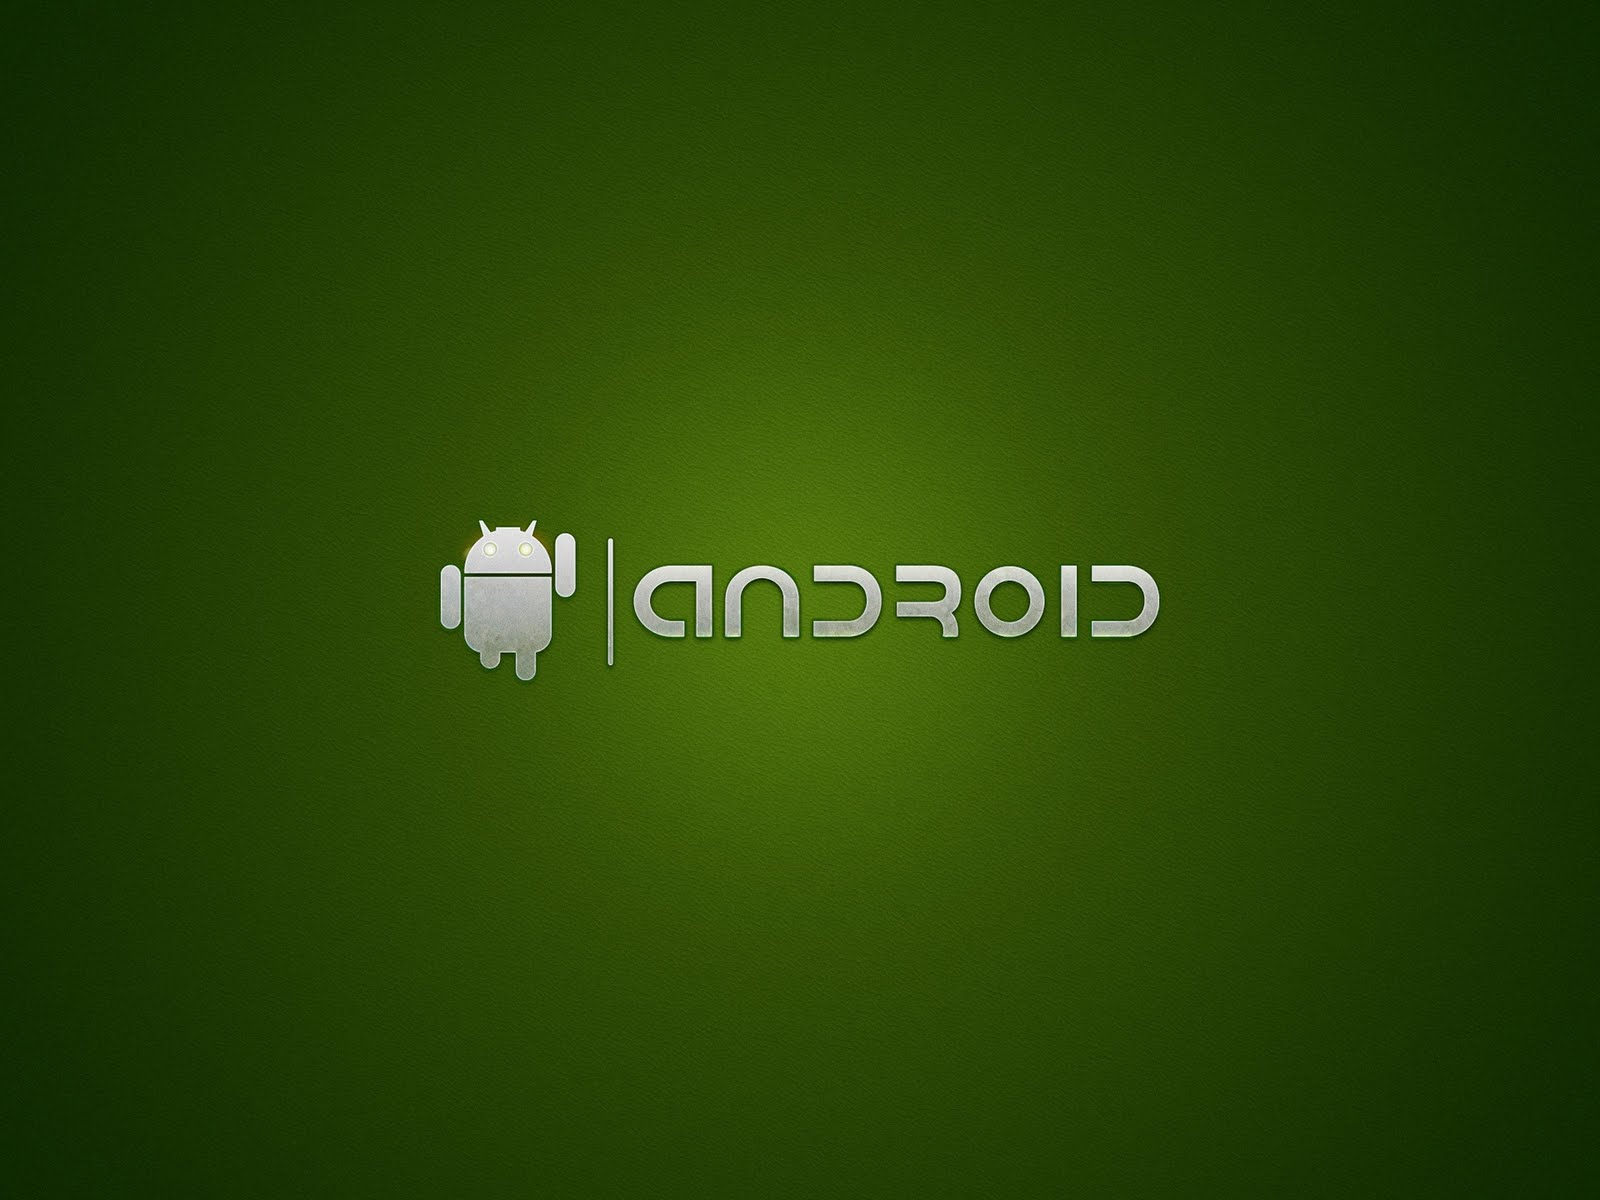 live android wallpaper 2